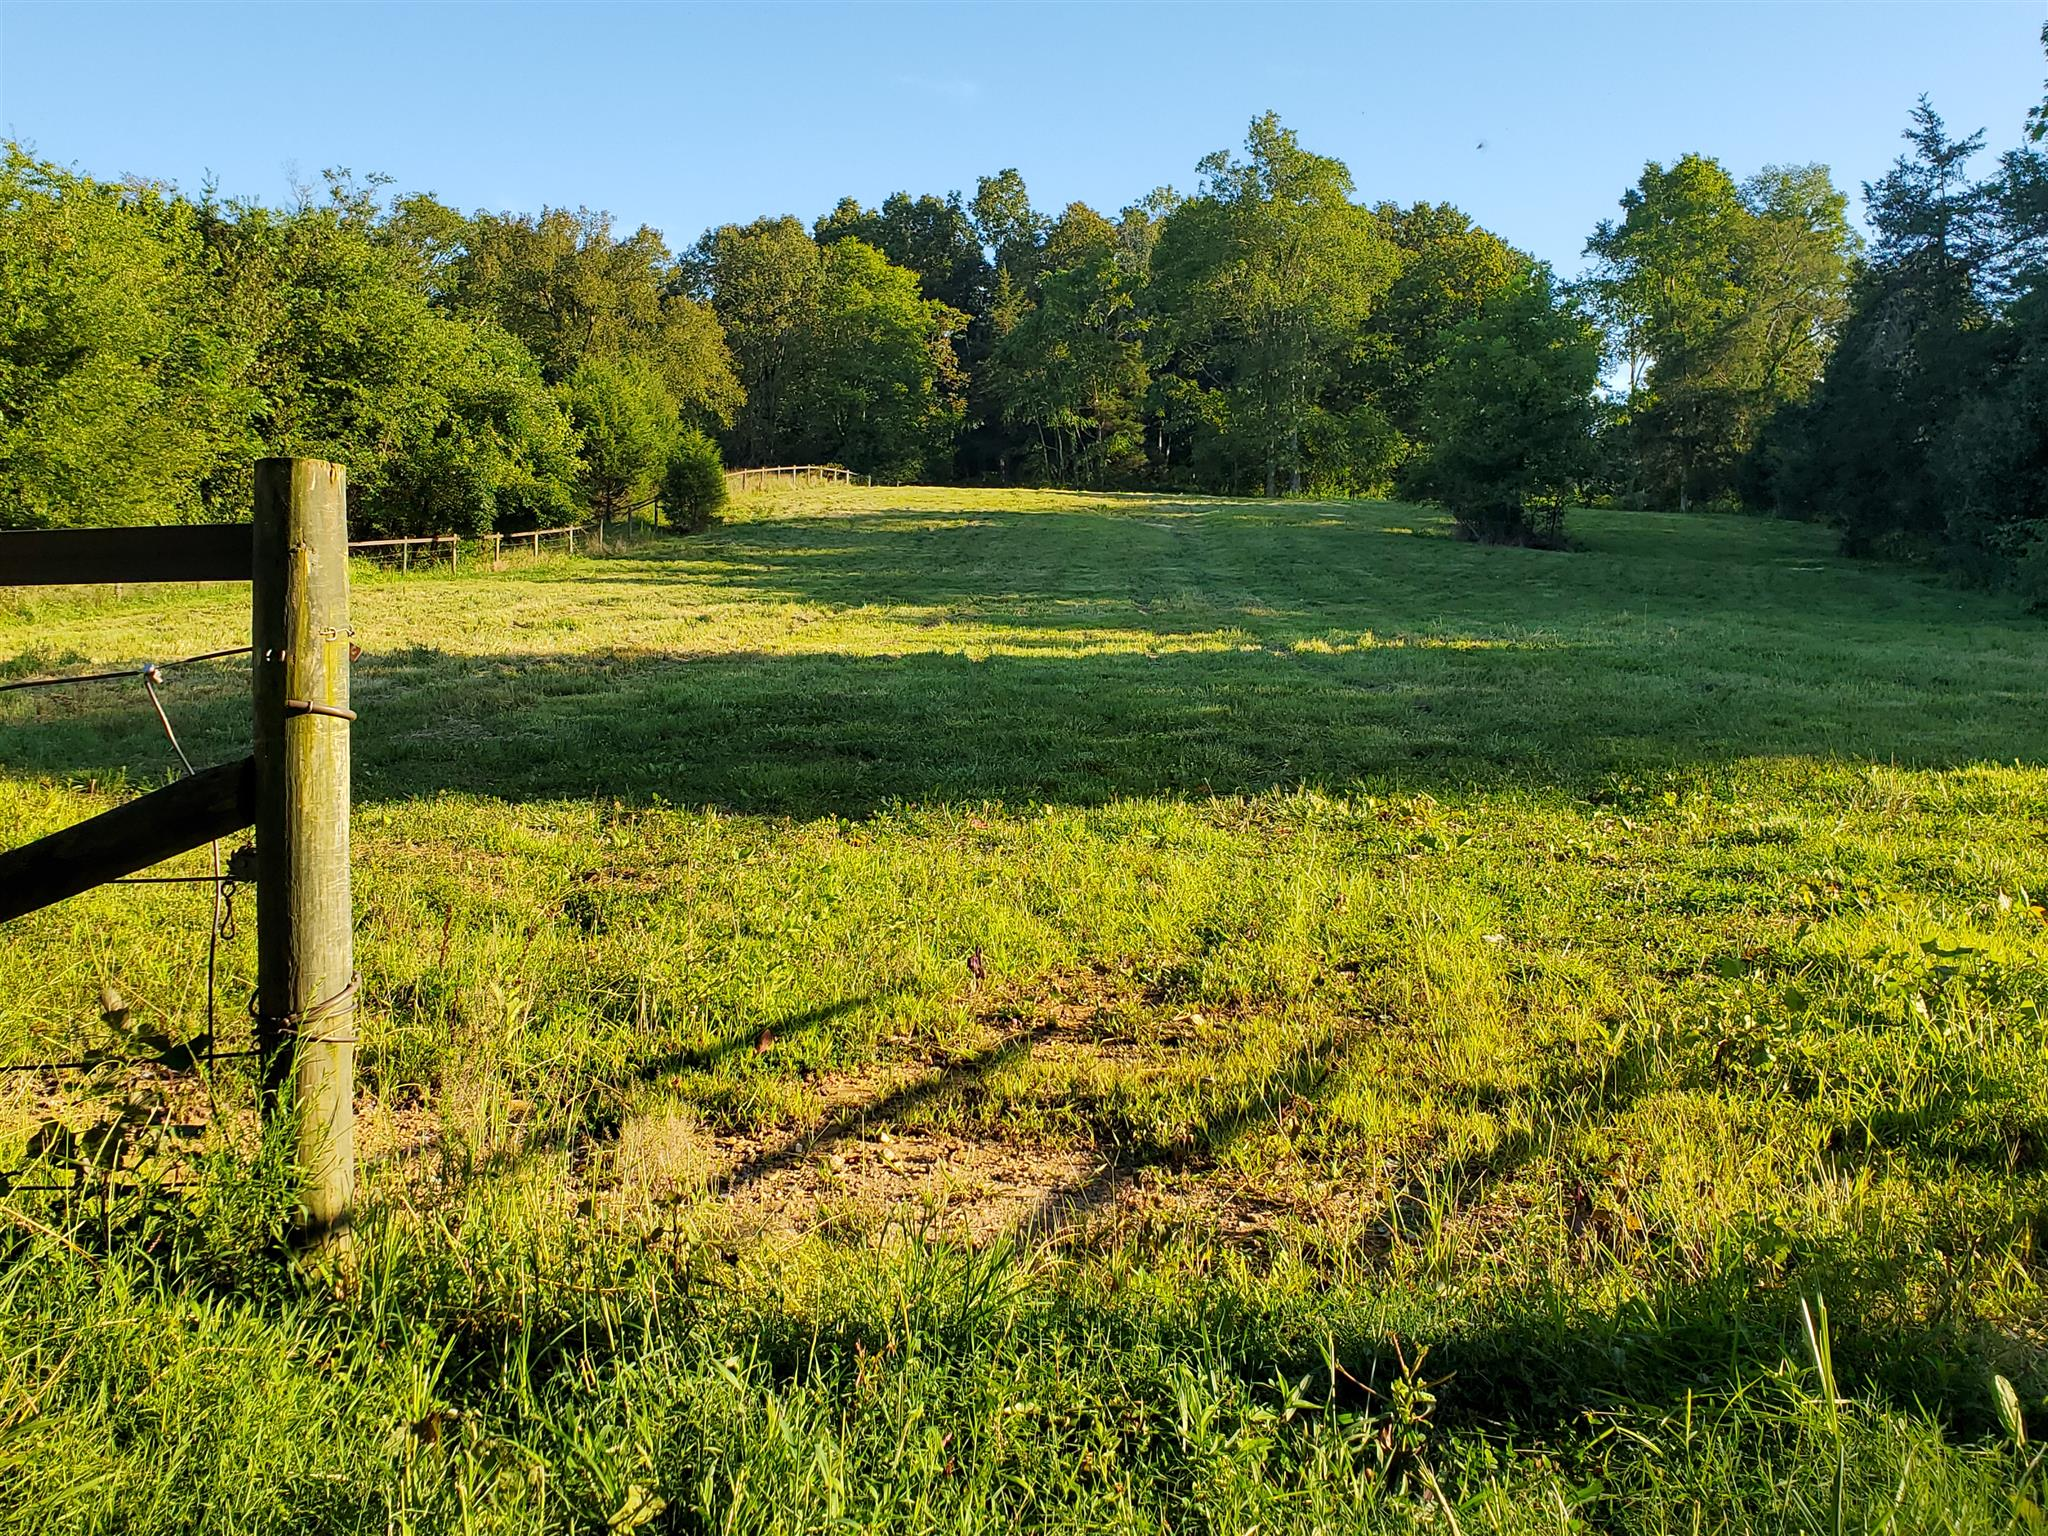 7340 Delina Rd, Petersburg, TN 37144 - Petersburg, TN real estate listing